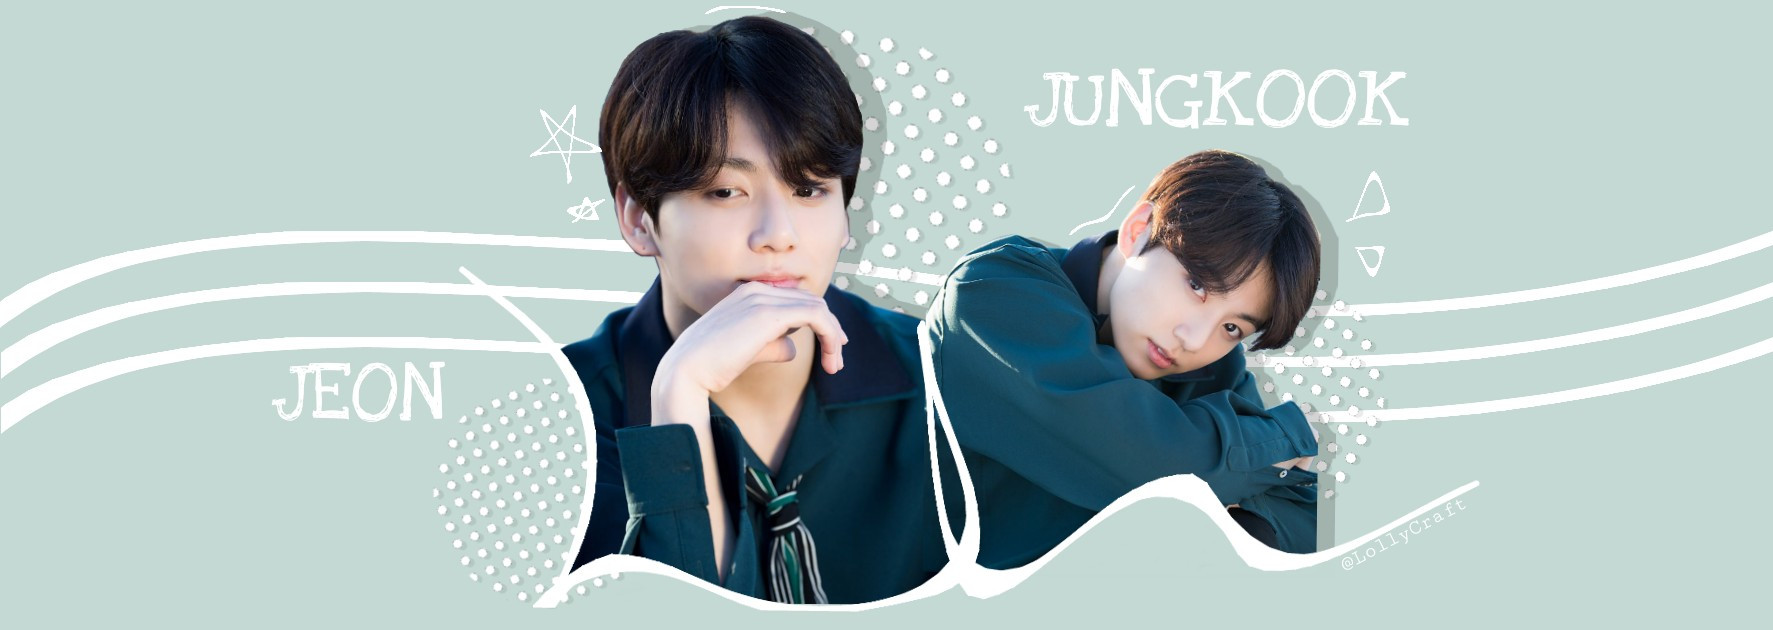 Jungkook's turn for the 7 member series for @shaivera 😉💙  Hope you like it so far😄... I may finish it tomorrow though... Because I've posted a lot today😂😂  #bts #bangtanboys #jungkook #jeonjungkook #jk #kookie #btsjungkook #kpop #freetoedit